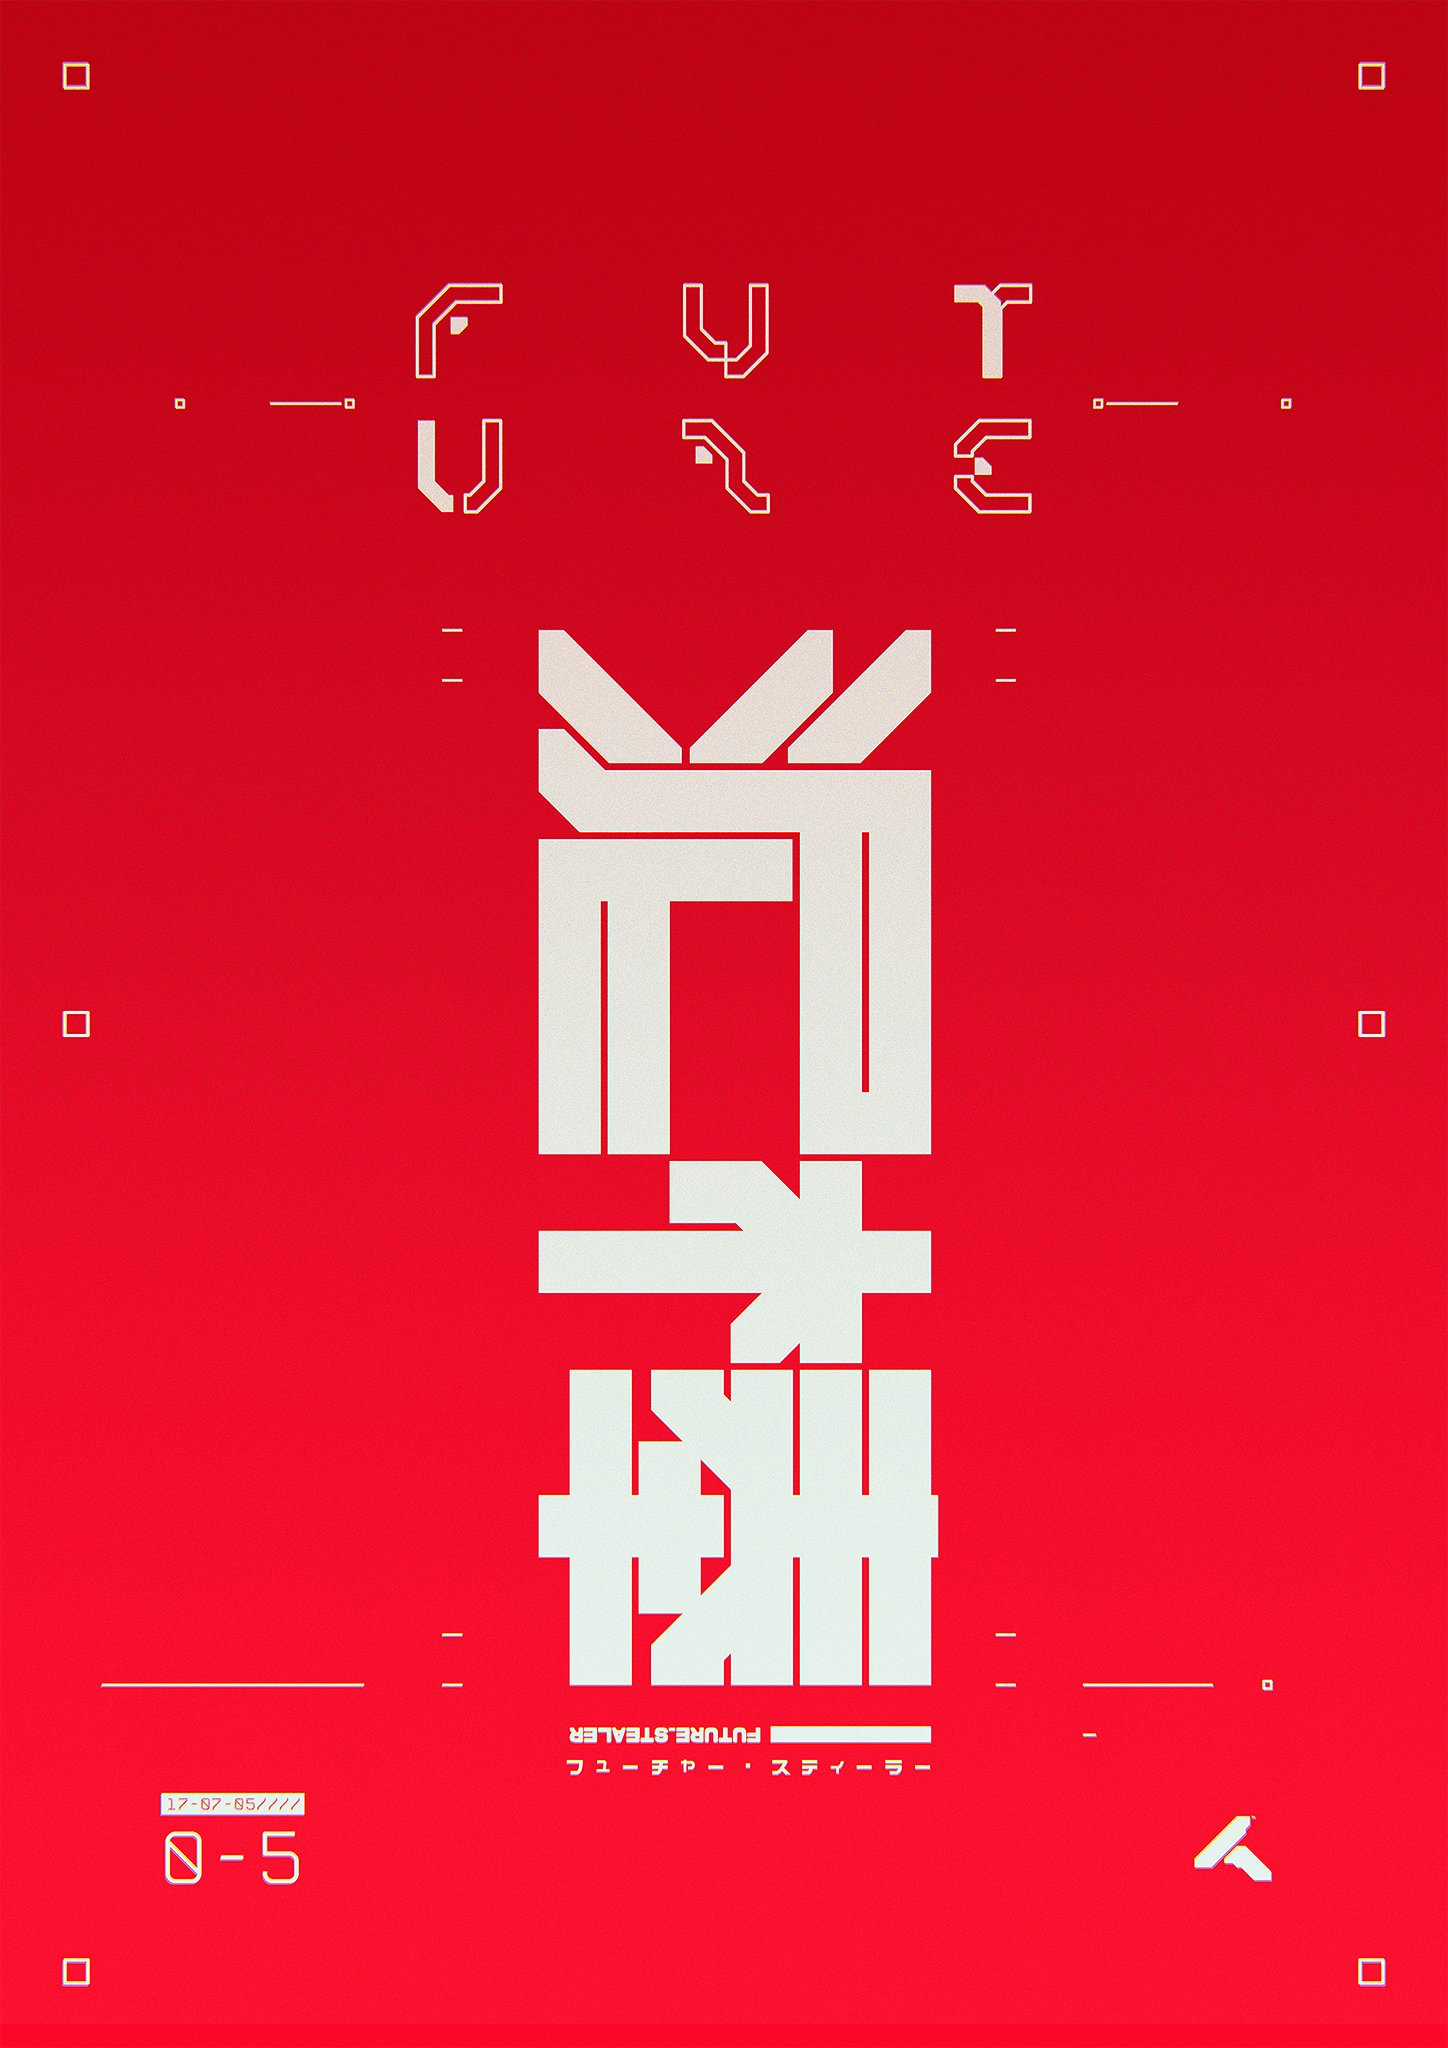 Chinese Typography, Typography Letters, Lettering, Graphic Design Layouts, Graphic Design